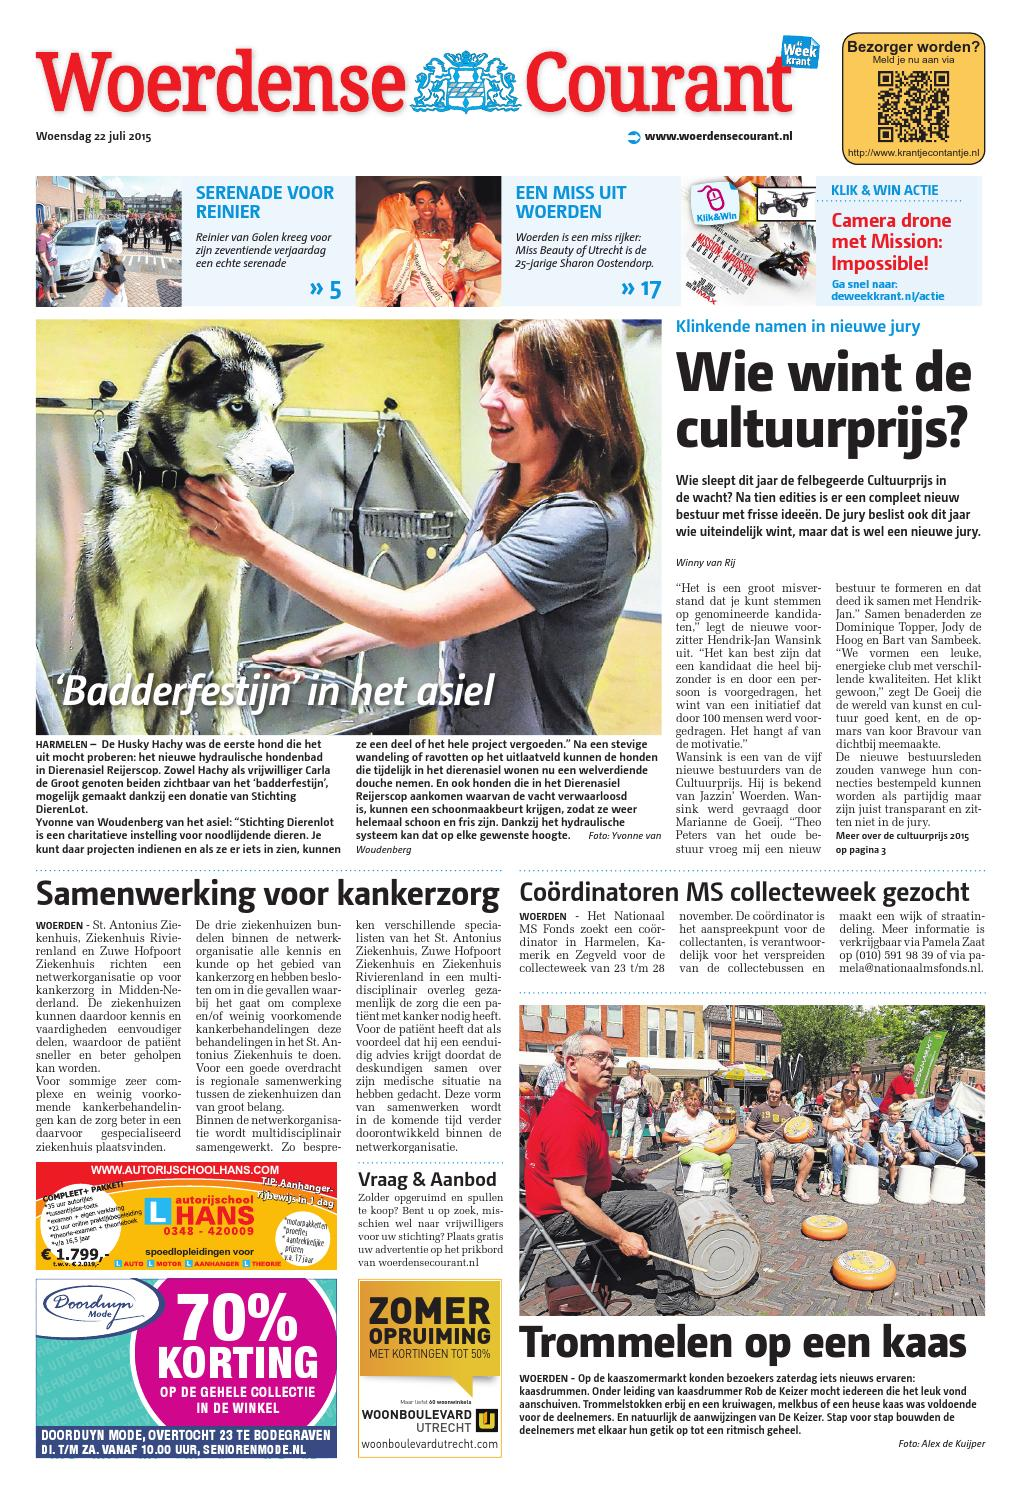 Woerdense Courant Week30 By Wegener Issuu